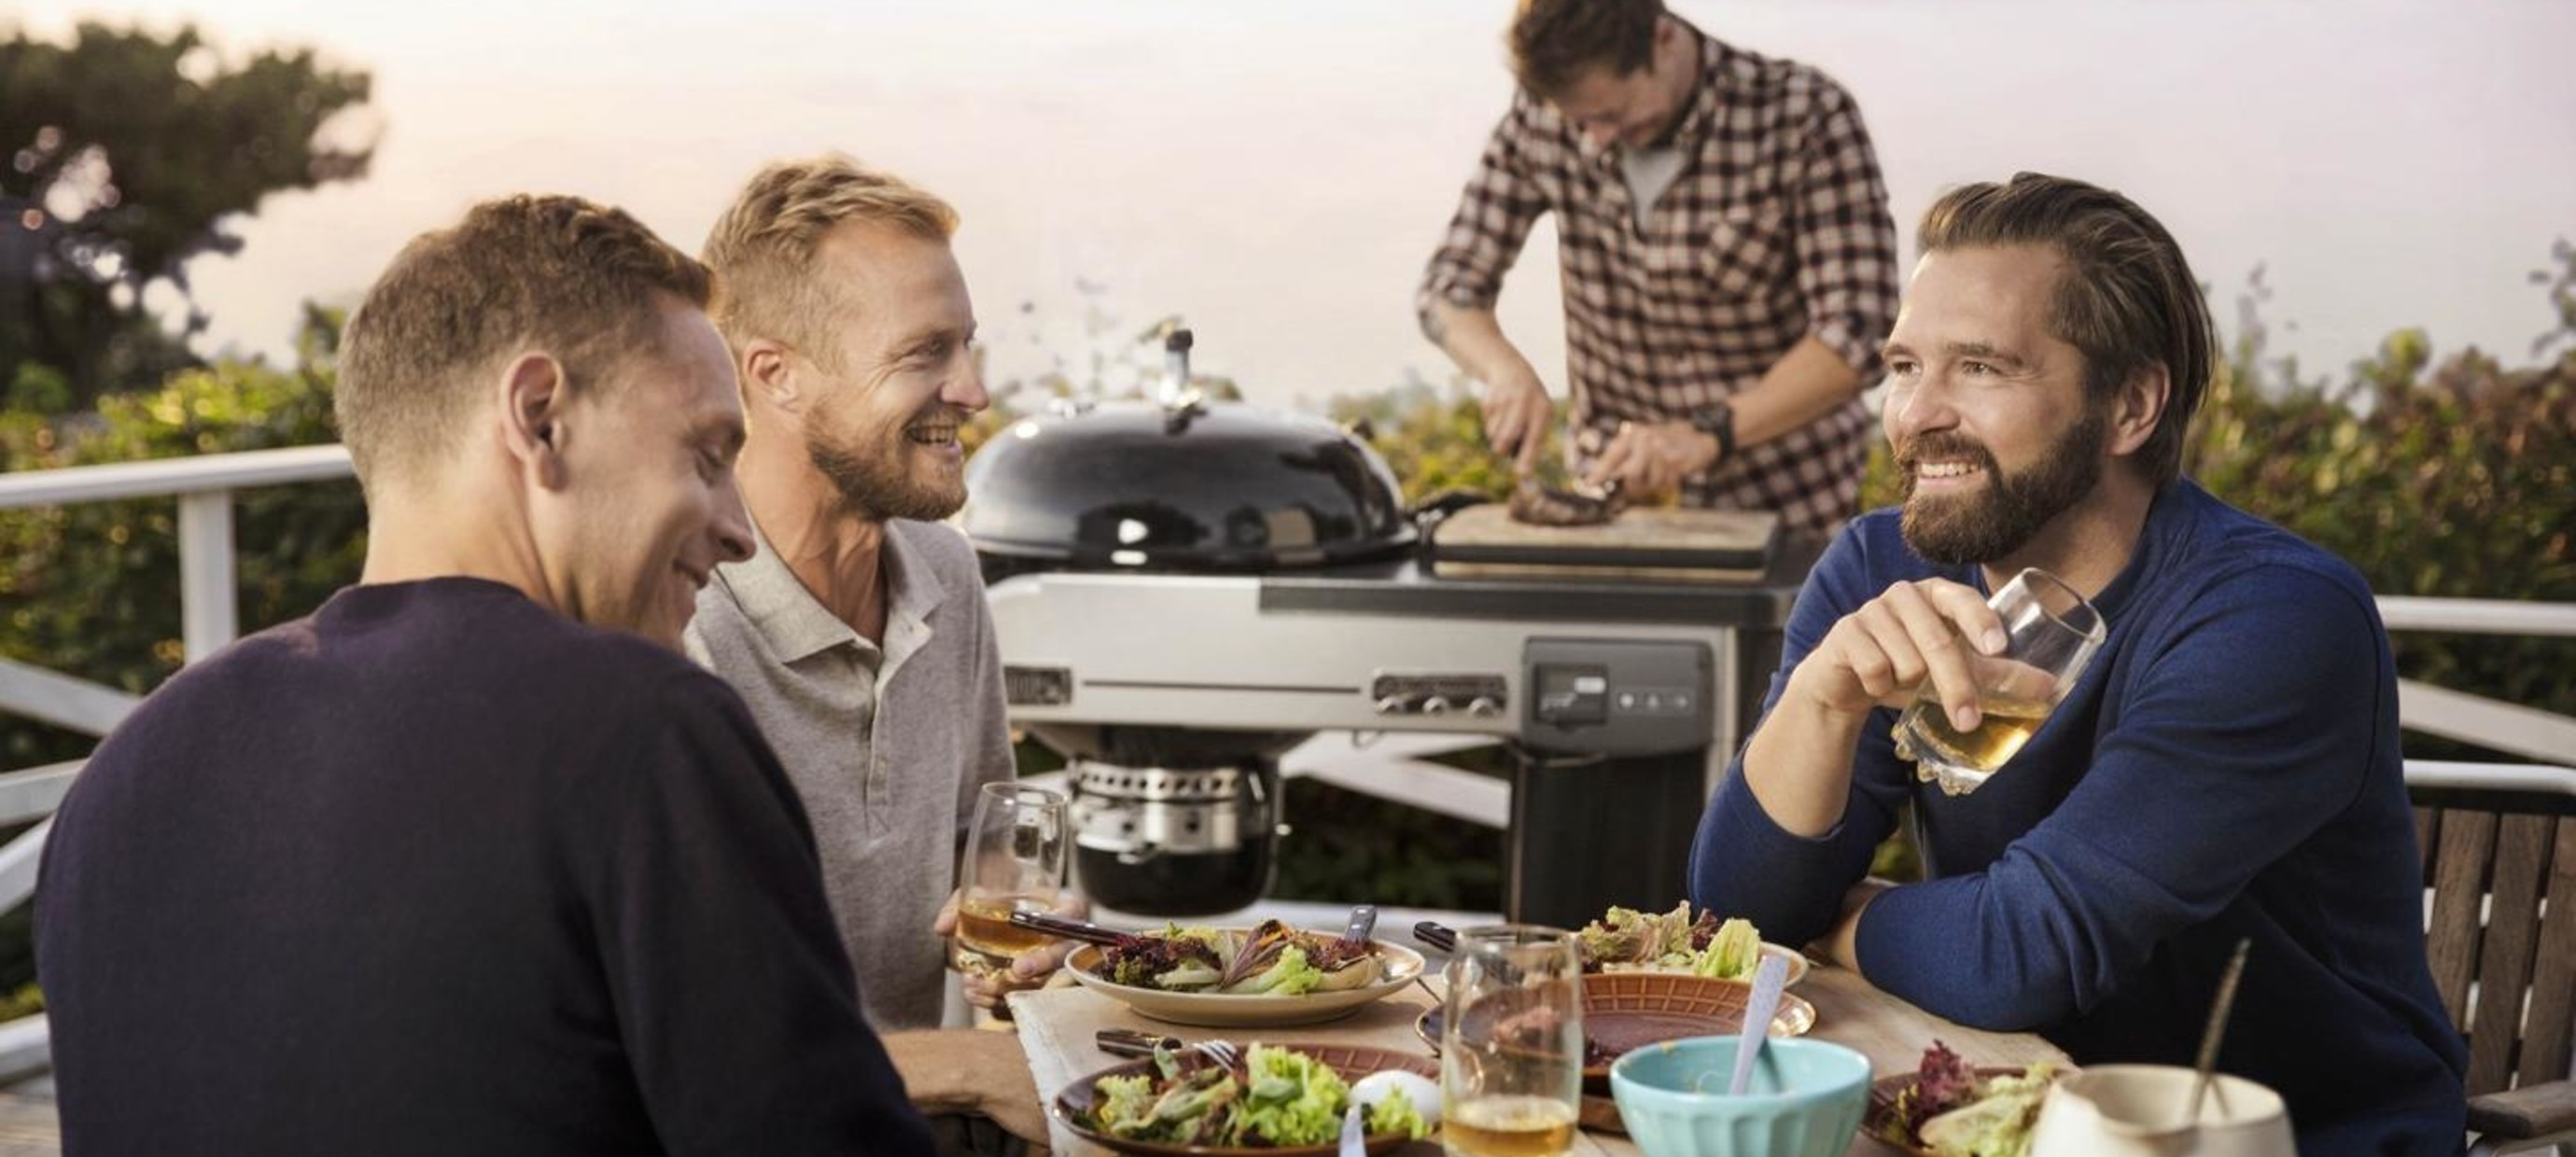 Free Weber BBQ Course at the Weber Grill Academy